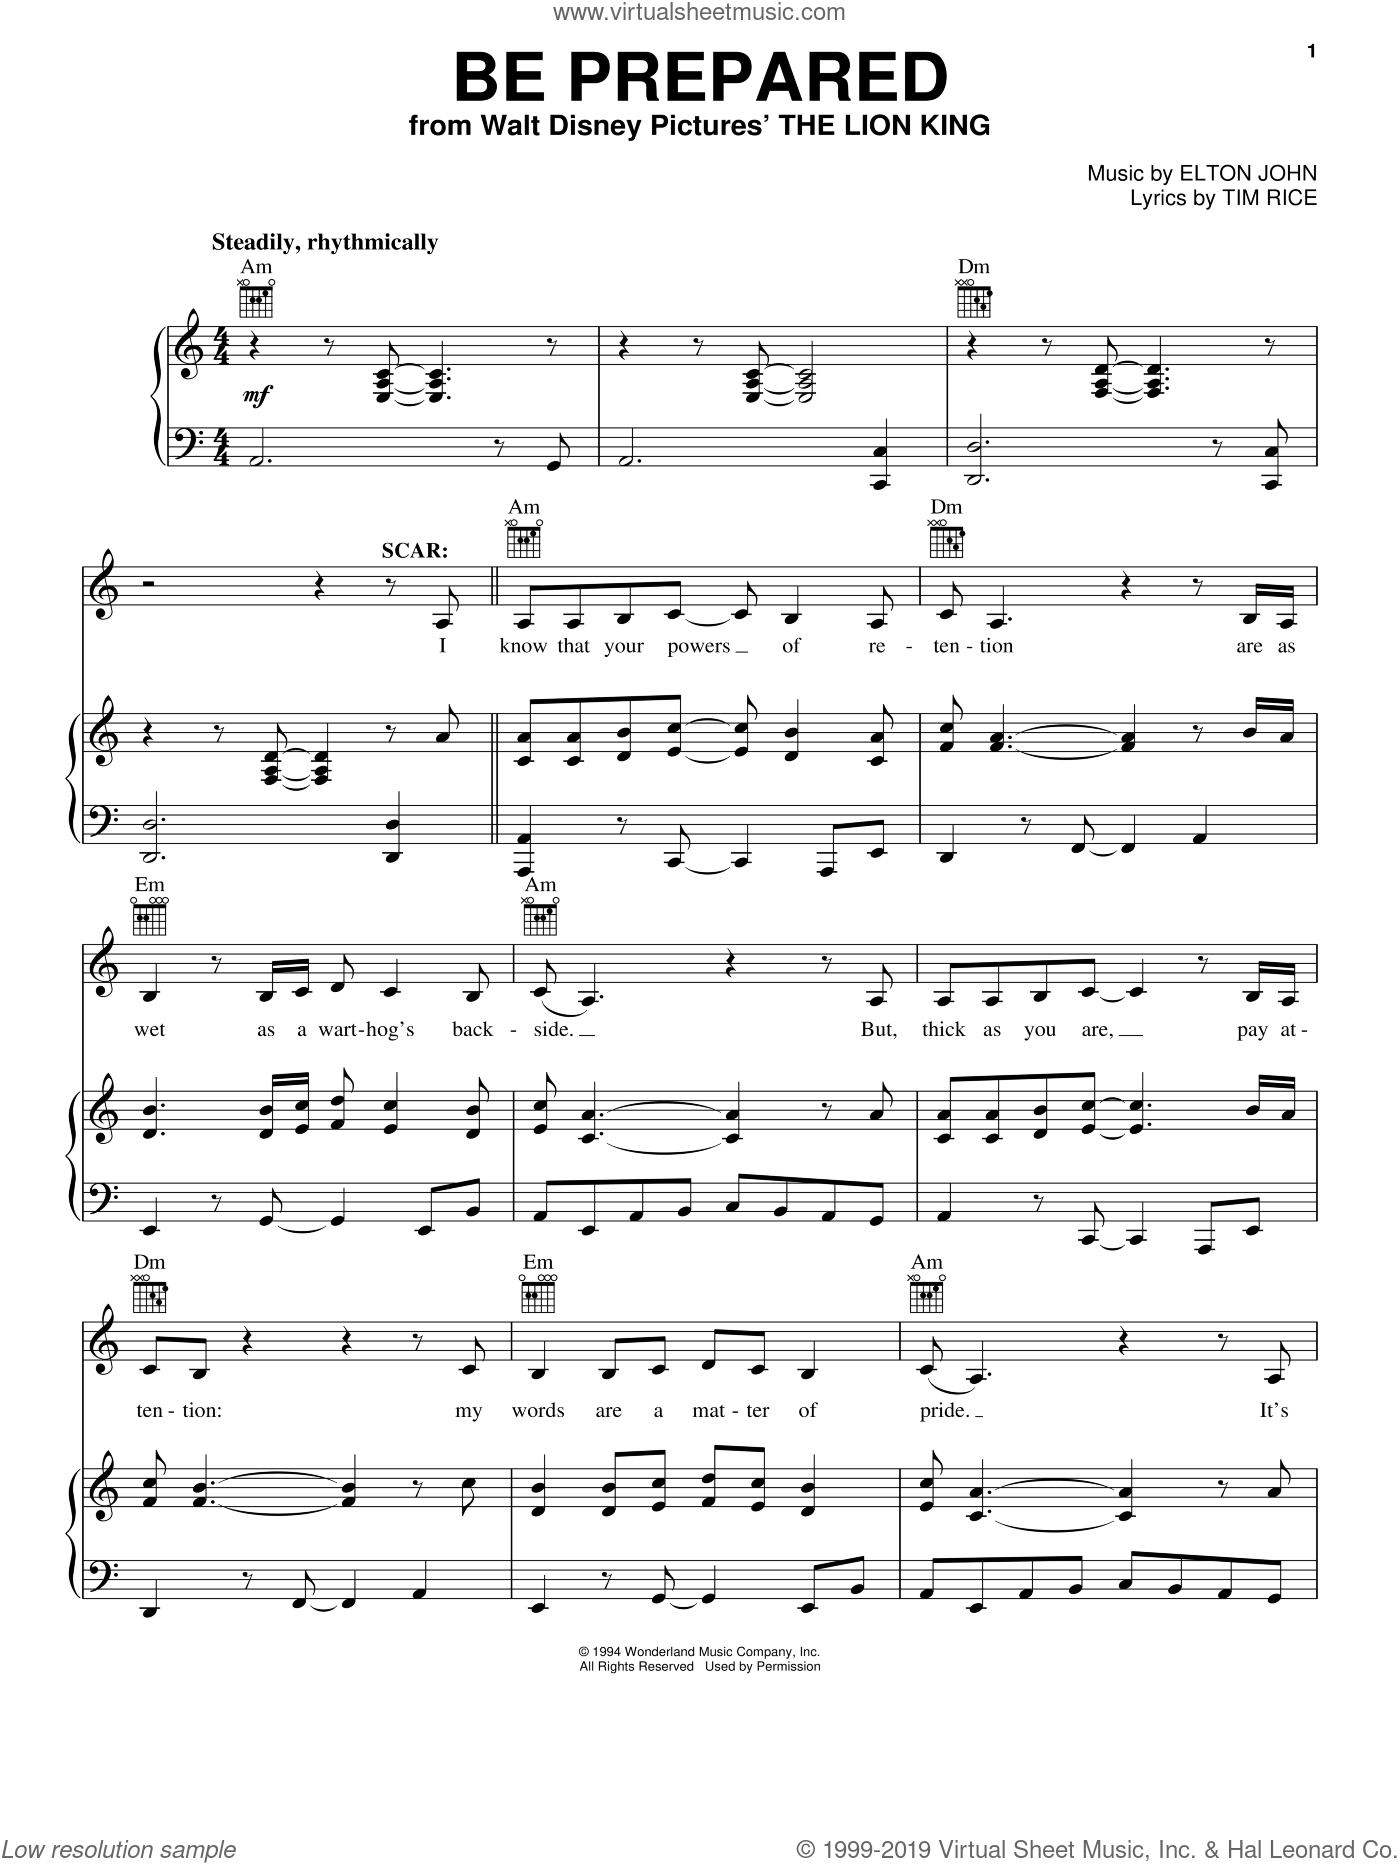 Be Prepared (from The Lion King) sheet music for voice, piano or guitar by Elton John, The Lion King (Movie) and Tim Rice, intermediate skill level